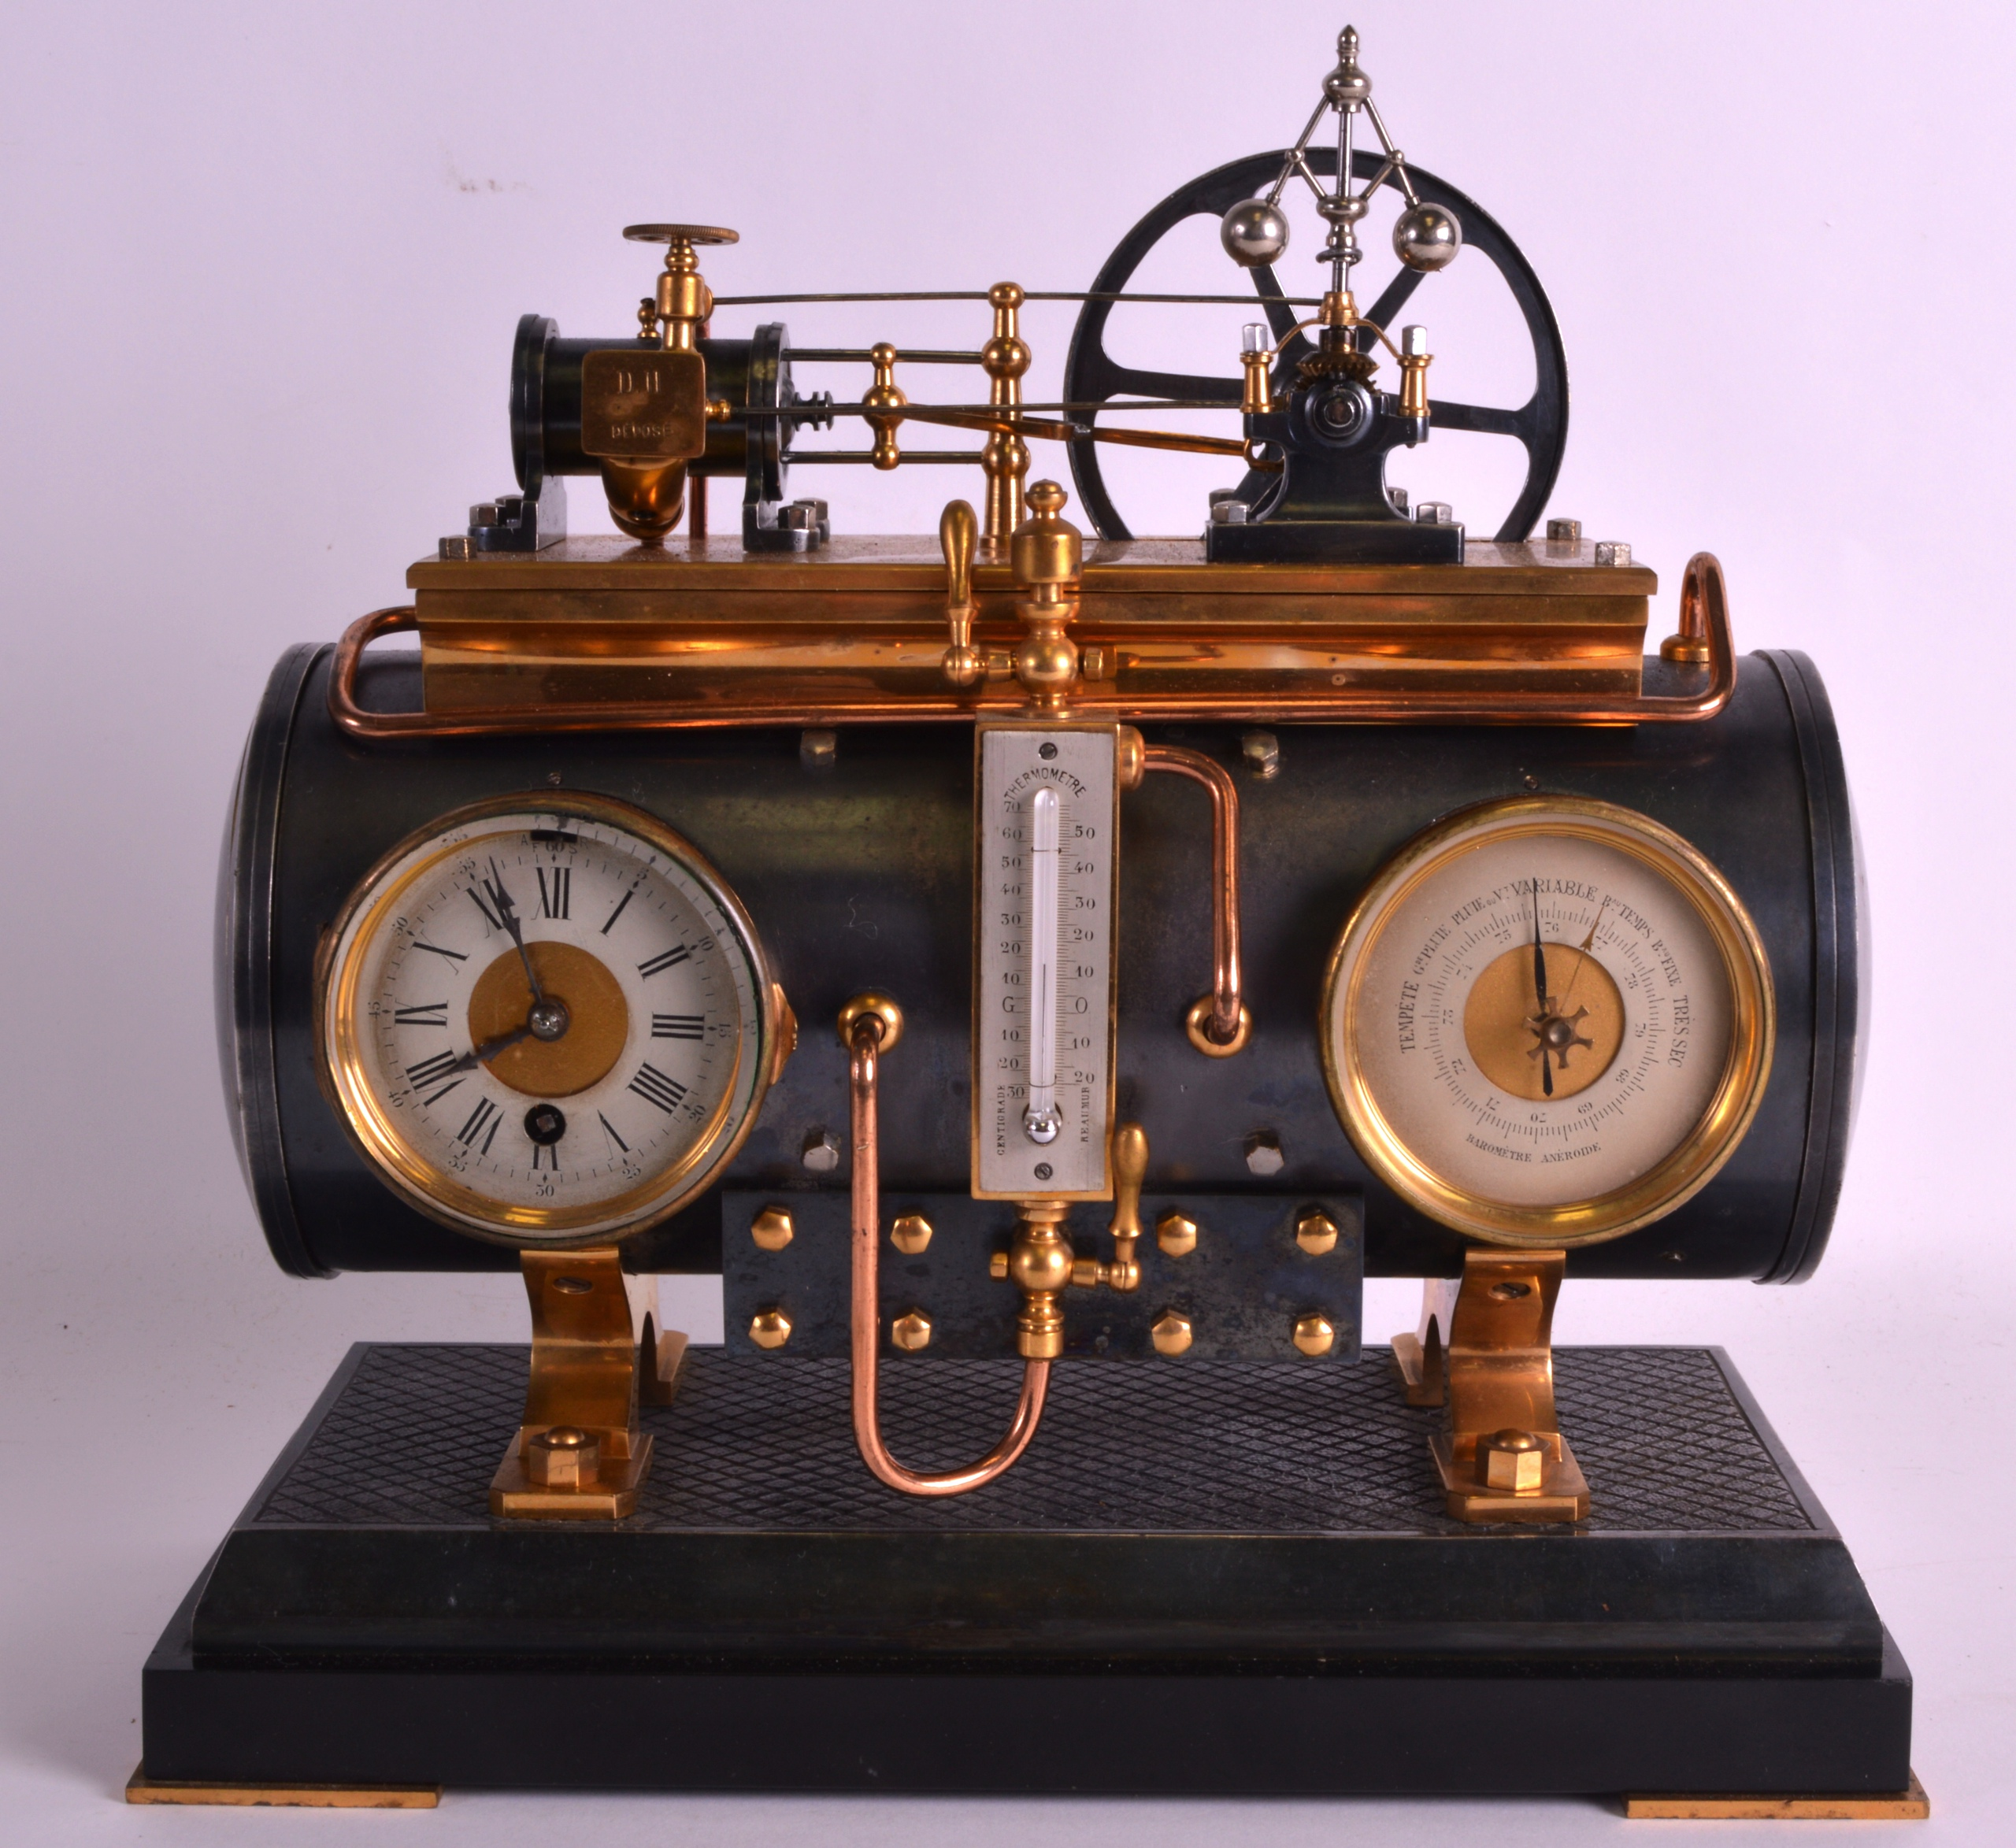 A FINE 19TH CENTURY FRENCH INDUSTRIAL BOILER ENGINE CLOCK C1880 with Roman chapters and blued